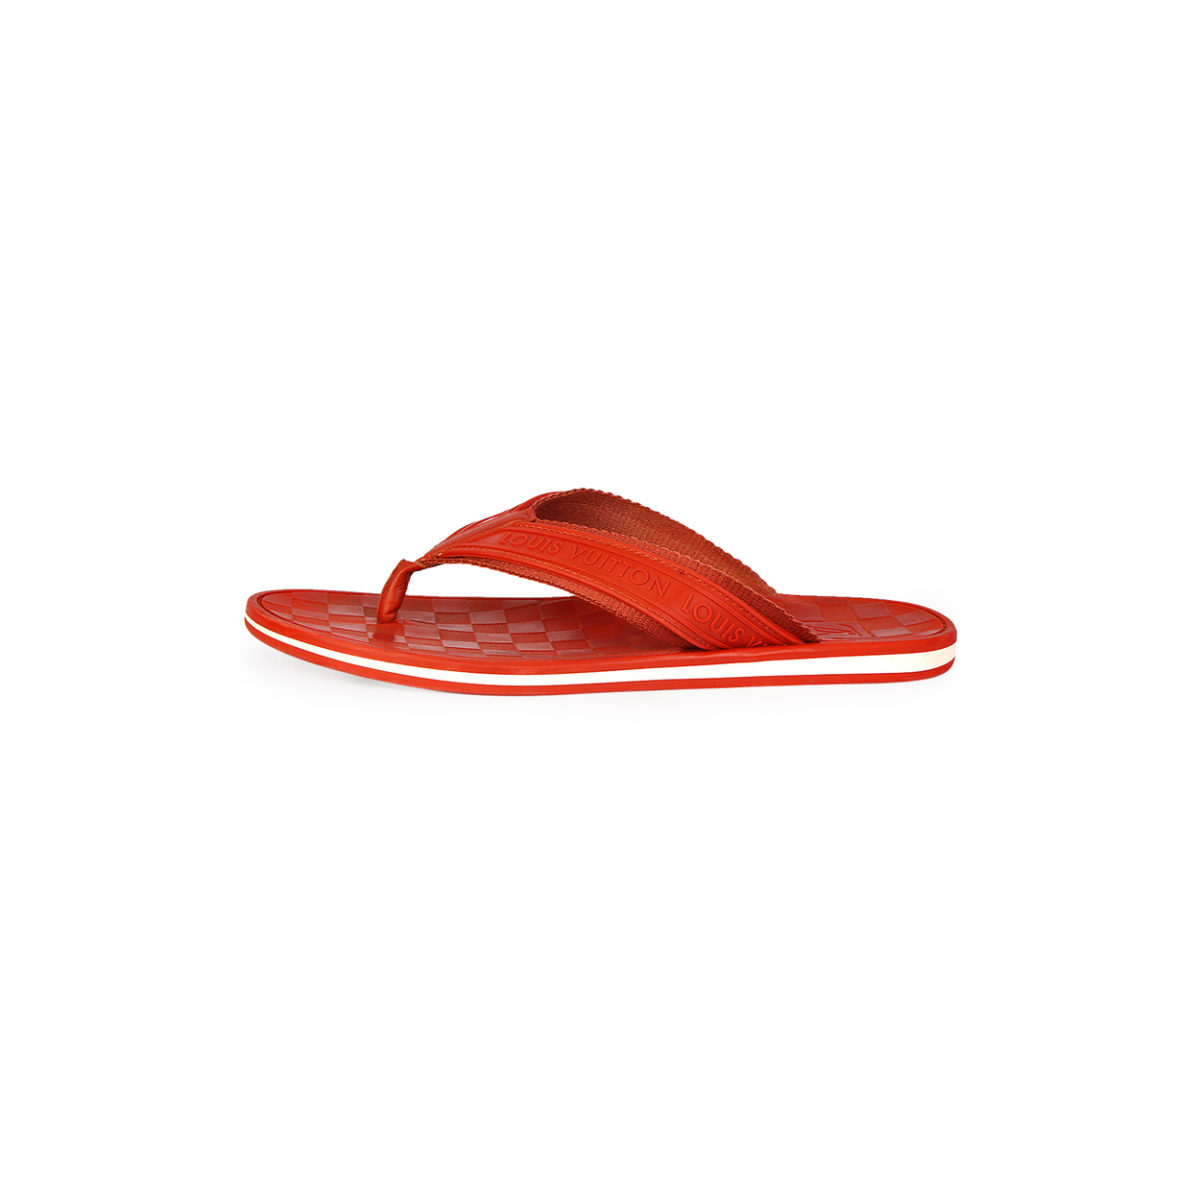 d9b48d263b474a LOUIS VUITTON Men s Damier Rubber Key Flip Flops Red - S  44 (9.5 ...